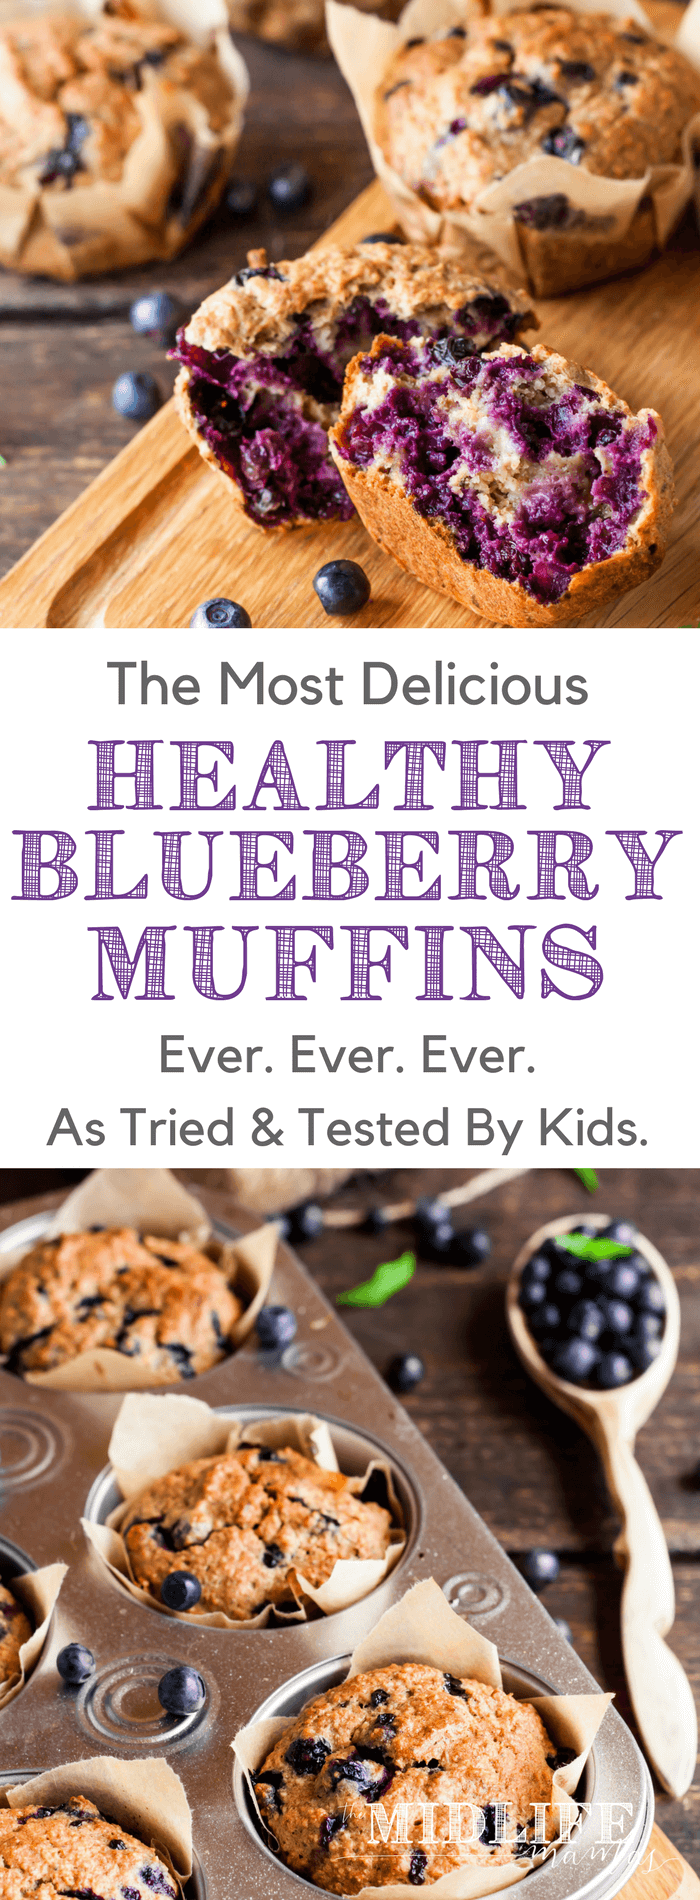 This easy homemade blueberry muffin recipe makes the very best moist and healthy blueberry muffins ever! They are gluten, egg, and dairy free - but are loaded with flavor from fresh or frozen blueberries, maple syrup, and the best cinnamon and vanilla. These blueberry muffins are made super healthy by adding flax seed, chia seeds, and oatmeal for fiber. This simple, clean-eating recipe is perfect for breakfast or snacks and the kids love it!! #healthymuffins #blueberrymuffins #blueberrymuffinrecipe #healthyblueberrymuffins #healthysnack www.themidlifemamas.com